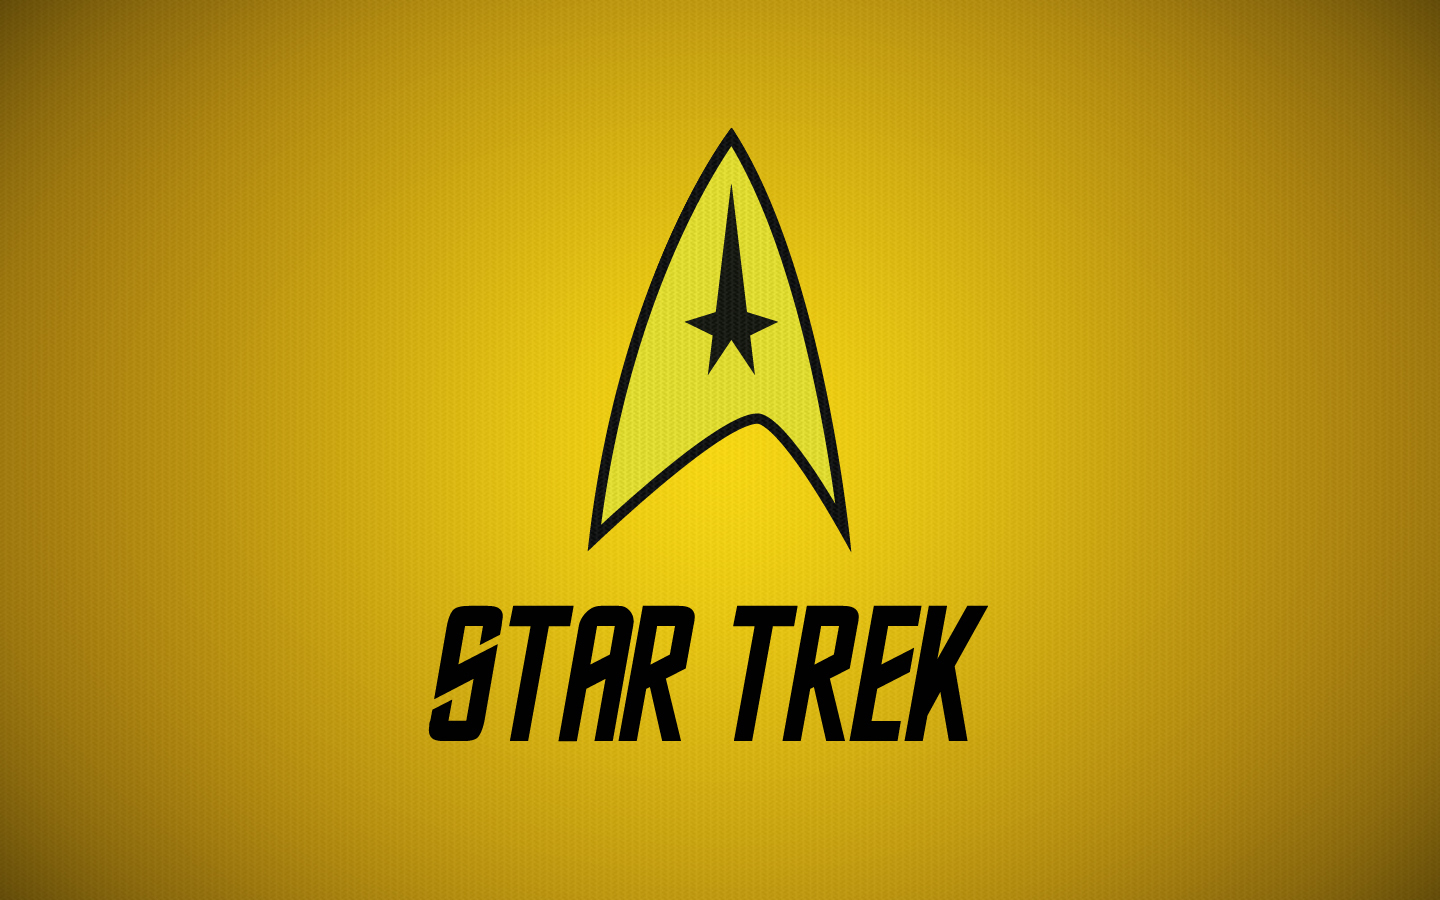 Star Trek Original Series Star Trek Logo